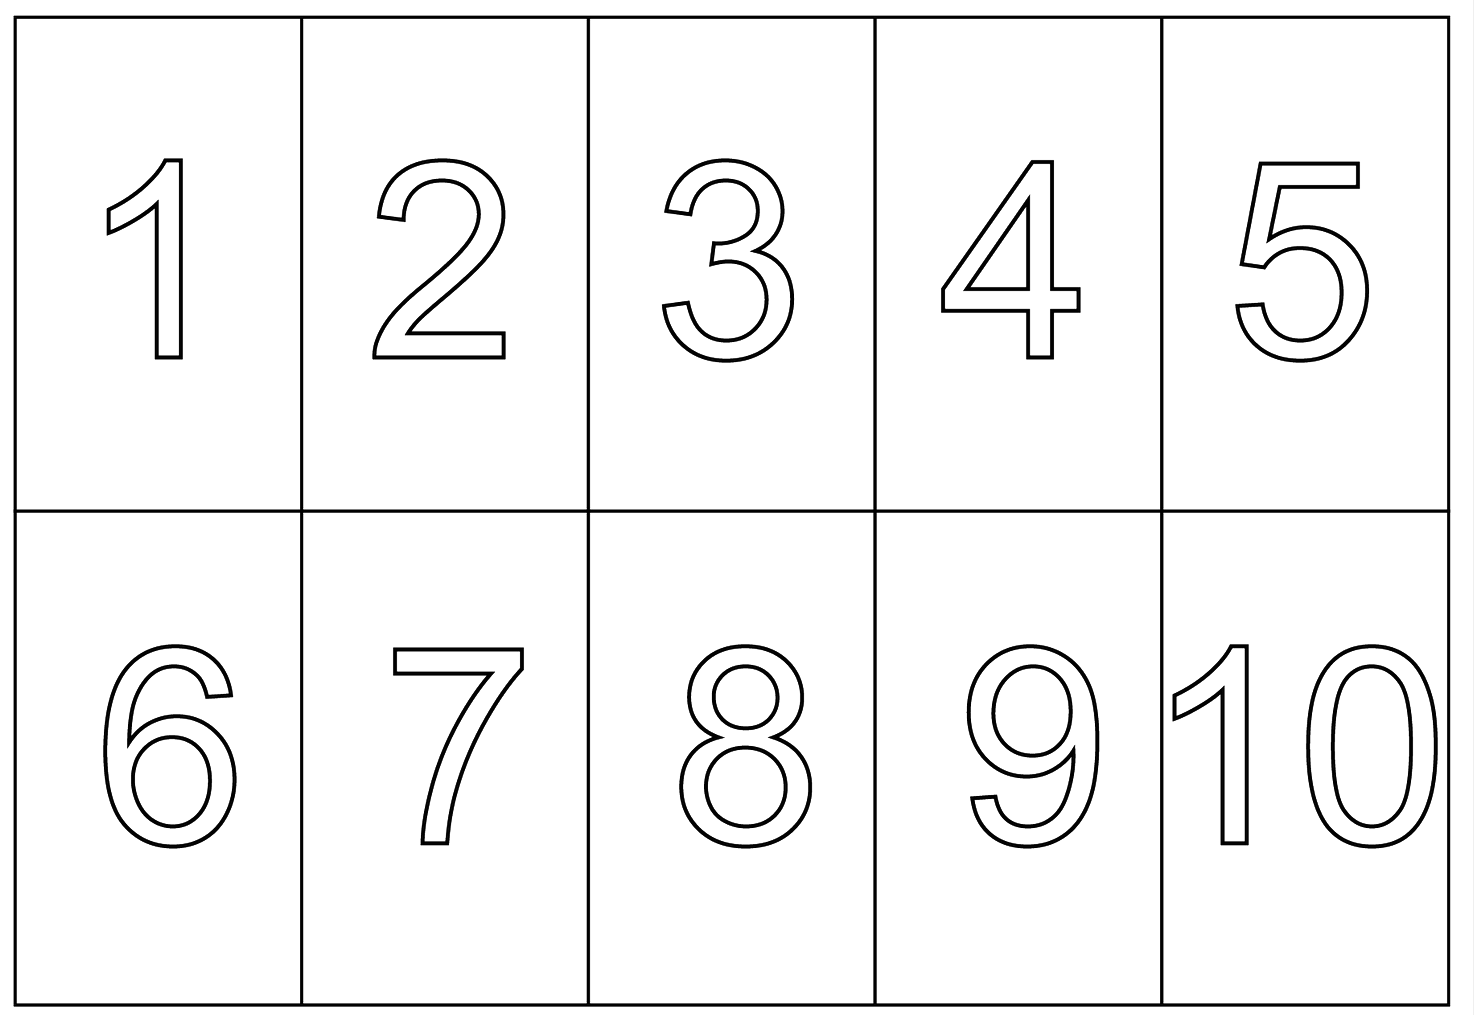 Numbers 1 to 10 clipart black and white svg download 1 to 10 Numbers PNG Transparent Images | PNG All svg download